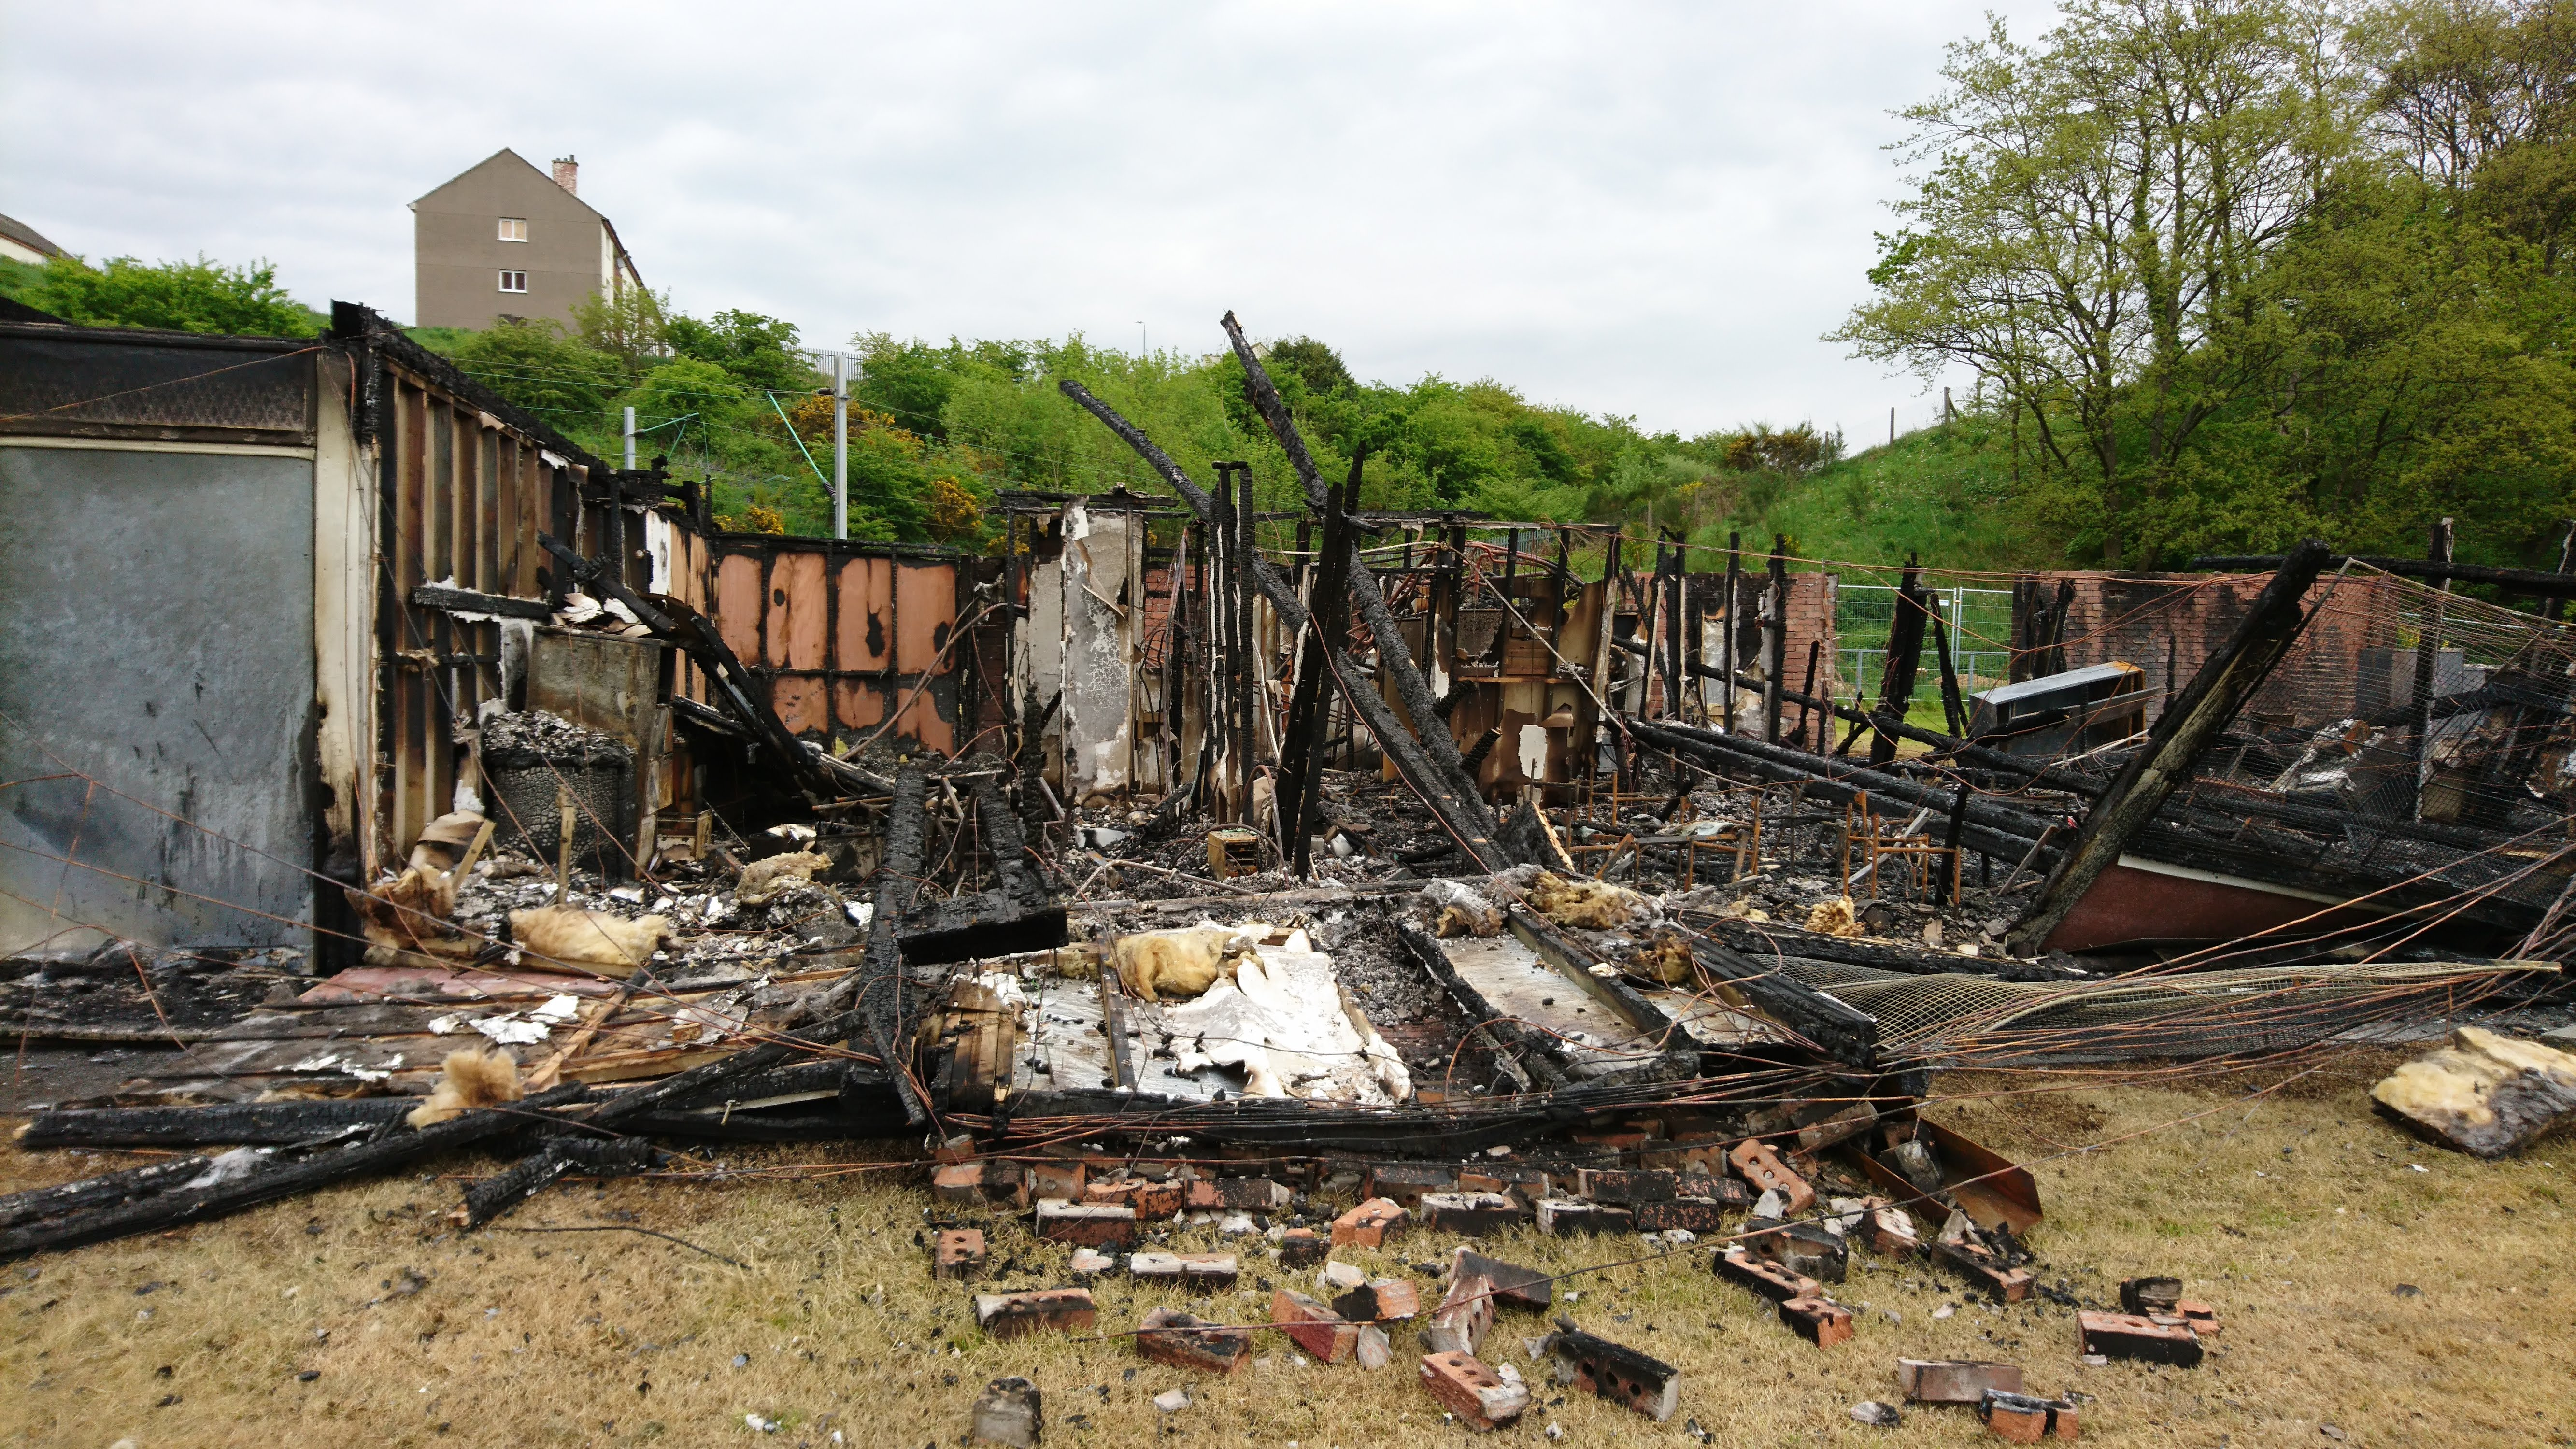 Photograph of the Havoc Pavilion after it was gutten by fire. May 2018